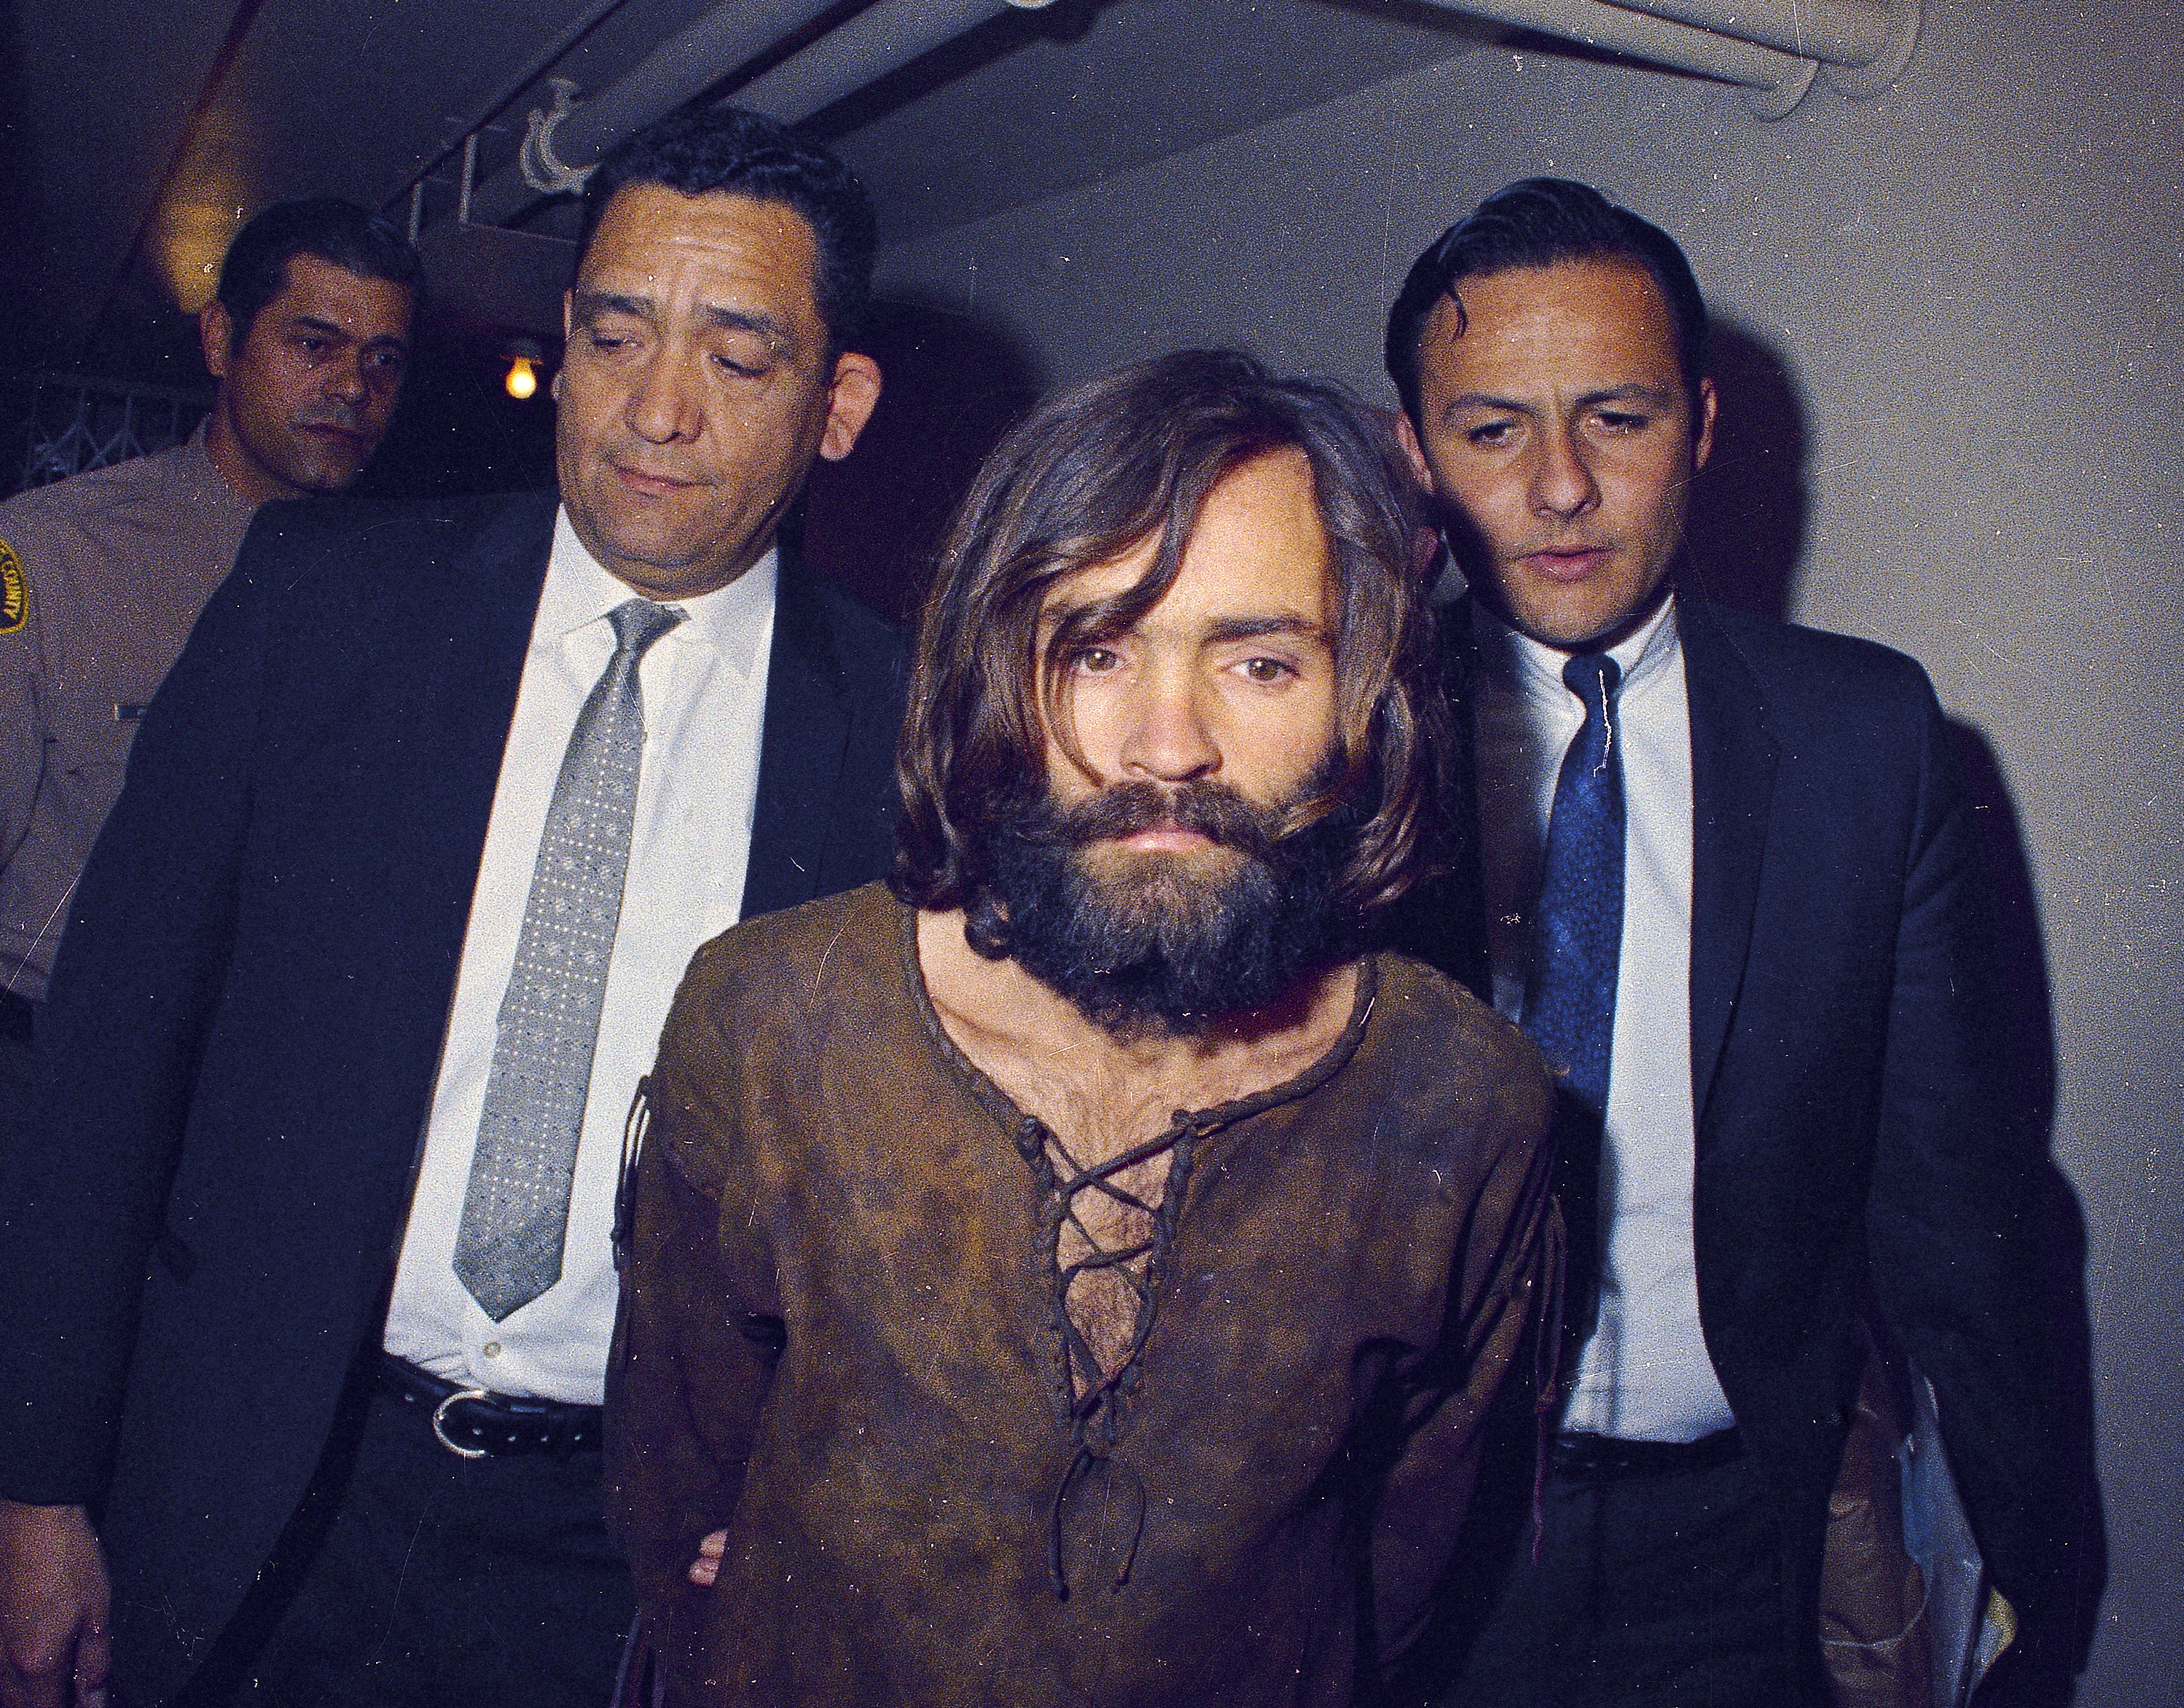 Charlie On Demand 10 Things To Read Watch And Hear On Charles Manson Rolling Stone Shan boodran, dr ina park. charlie on demand 10 things to read watch and hear on charles manson rolling stone